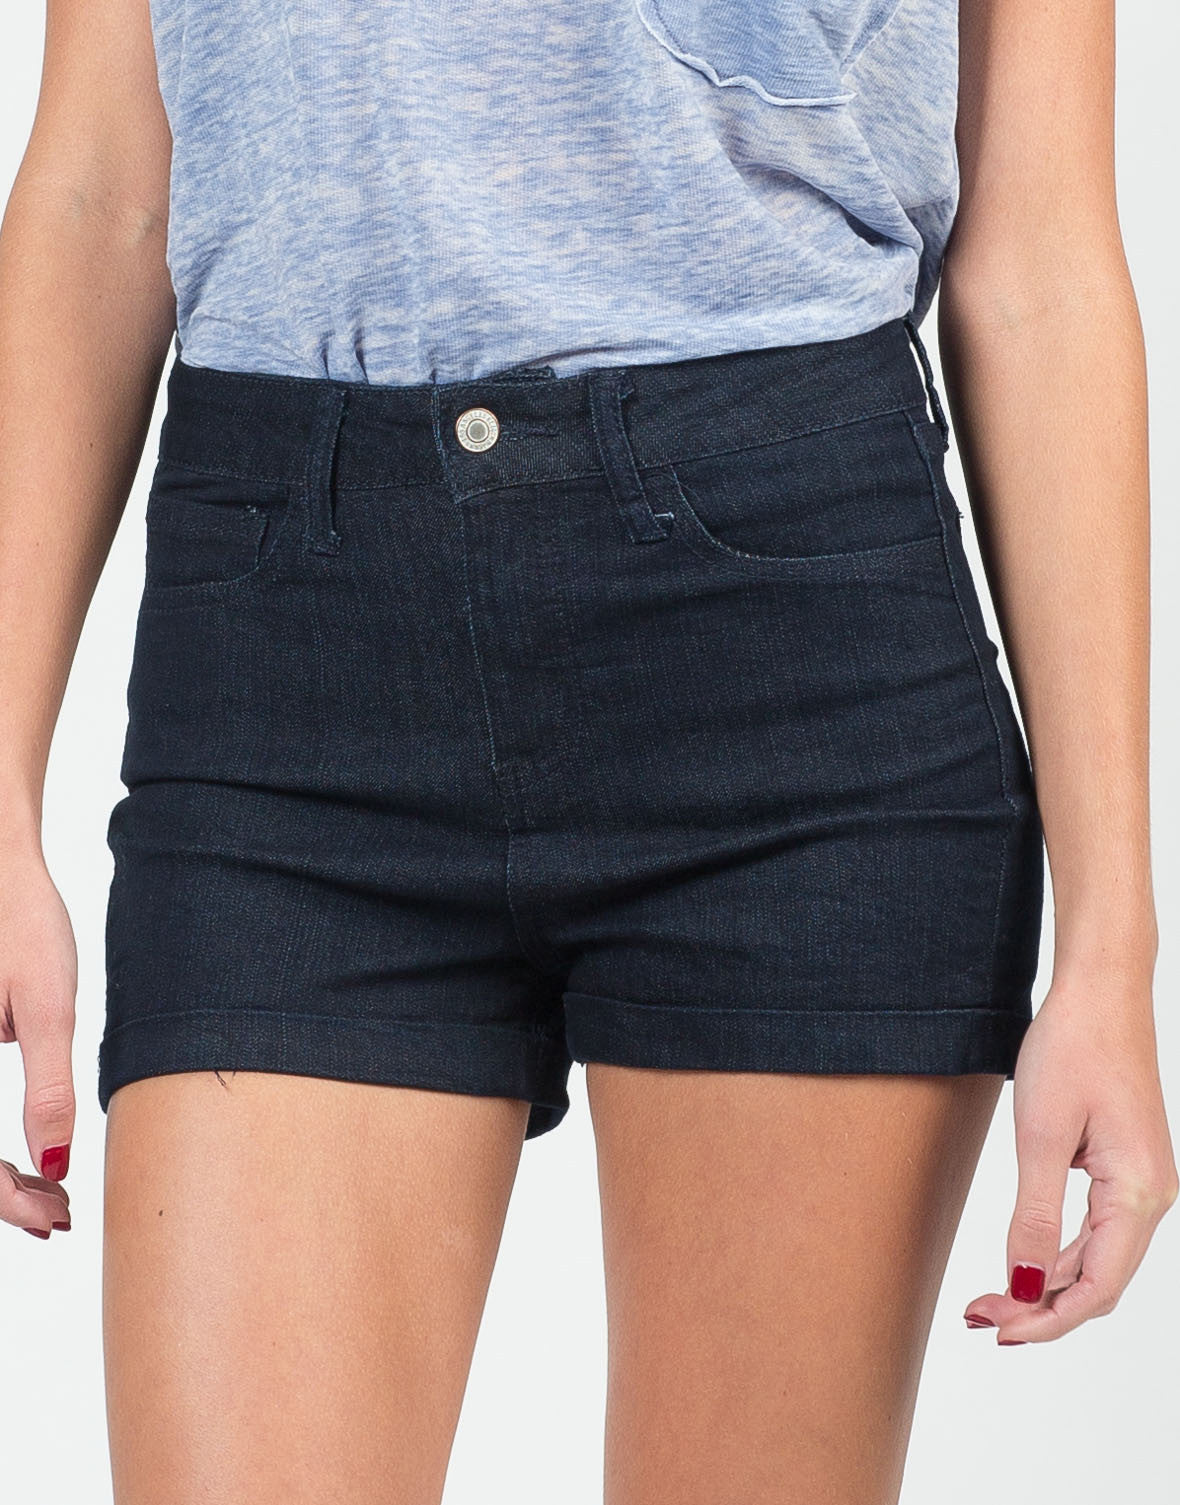 Detail of Fitted Foldover High Waisted Shorts